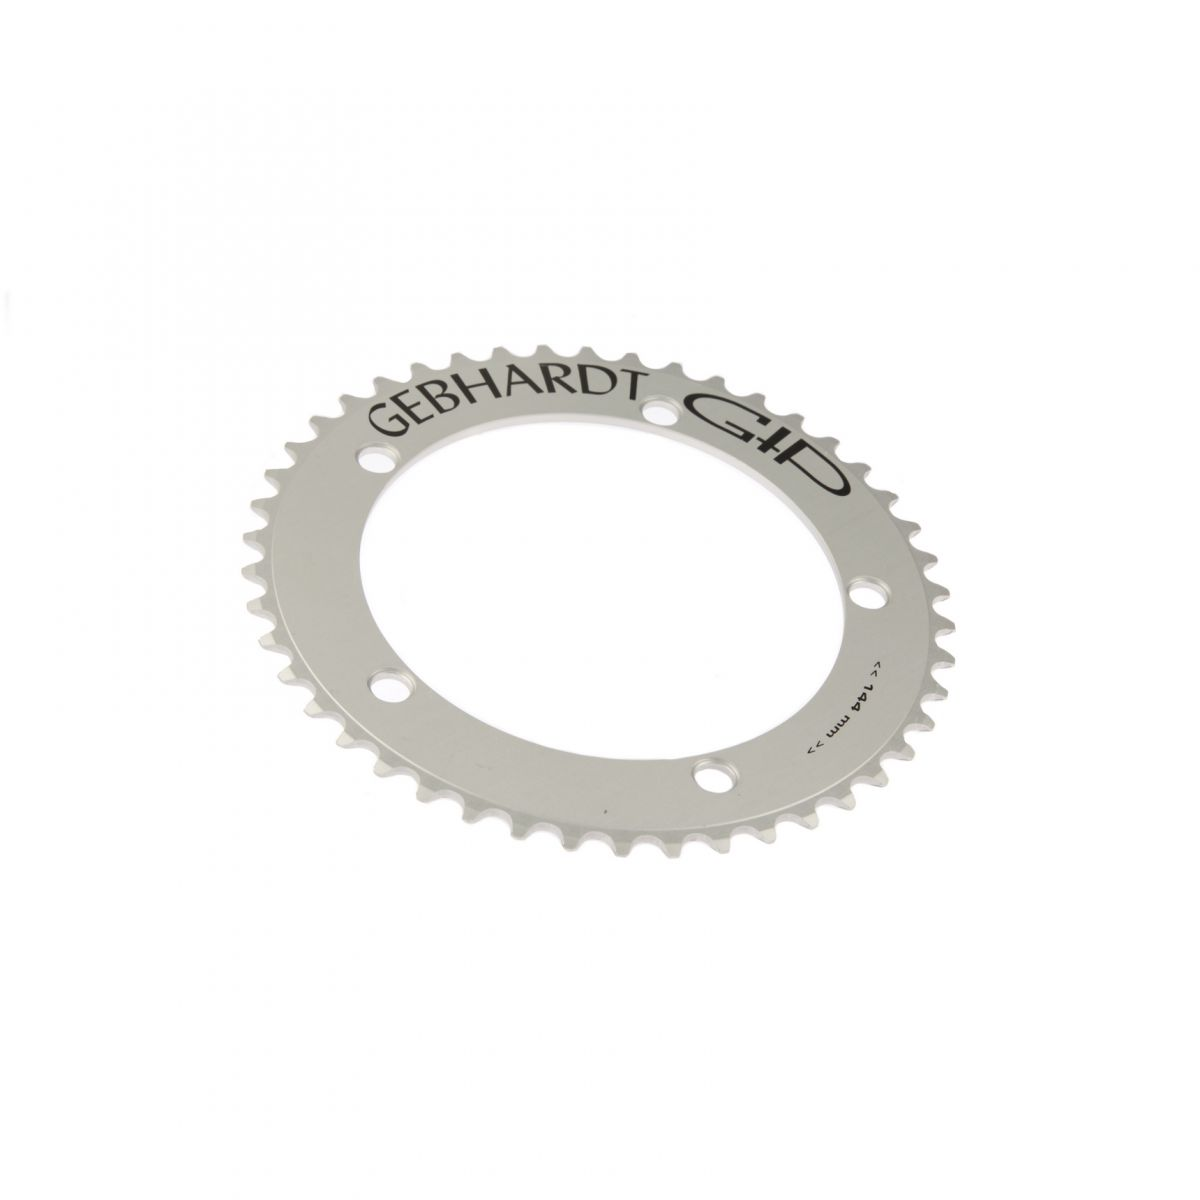 gebhardt chainring track 3mm bcd 144 mm 5hole 46t silver